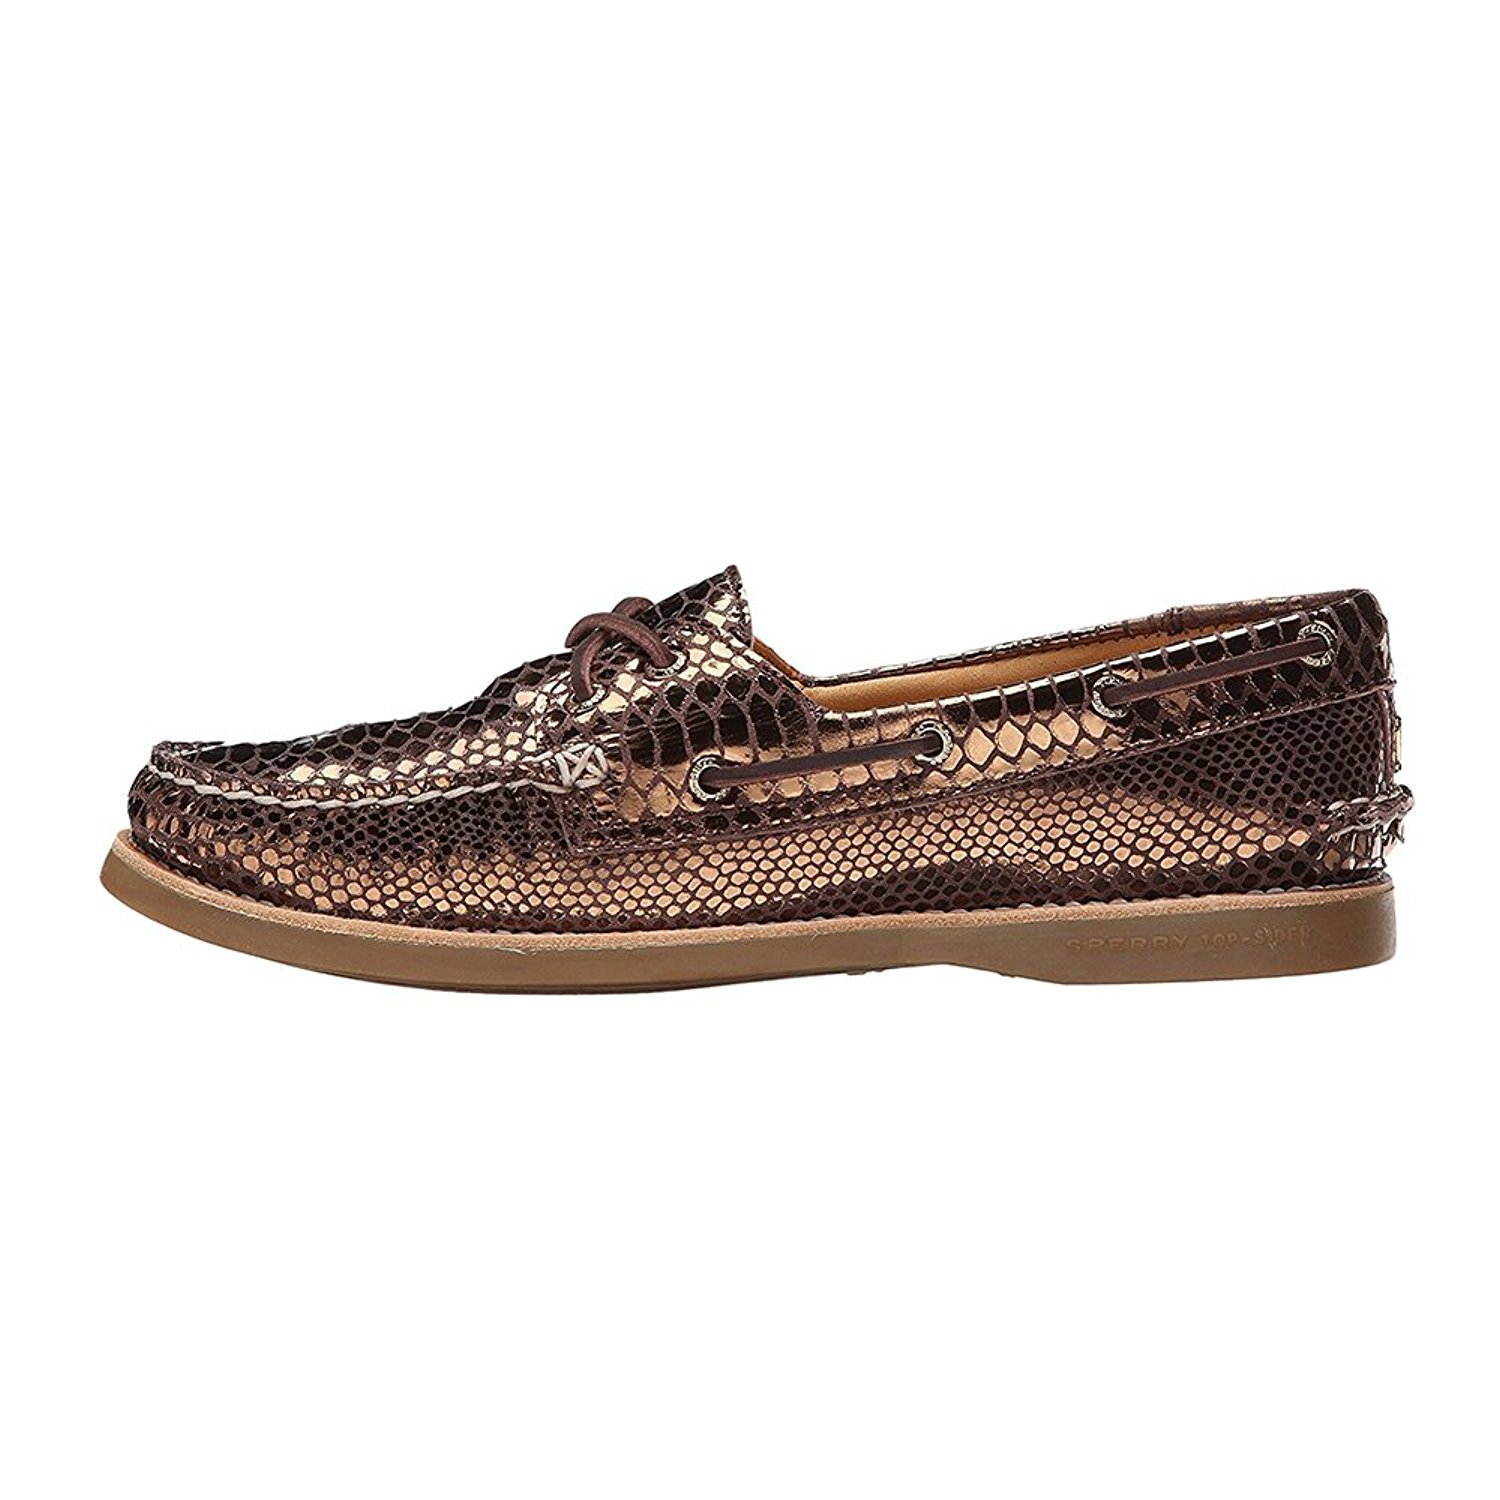 Sperry Top-Sider Women's Gold Cup A/O Boat Sneaker (5 B(M) US, Bronze)